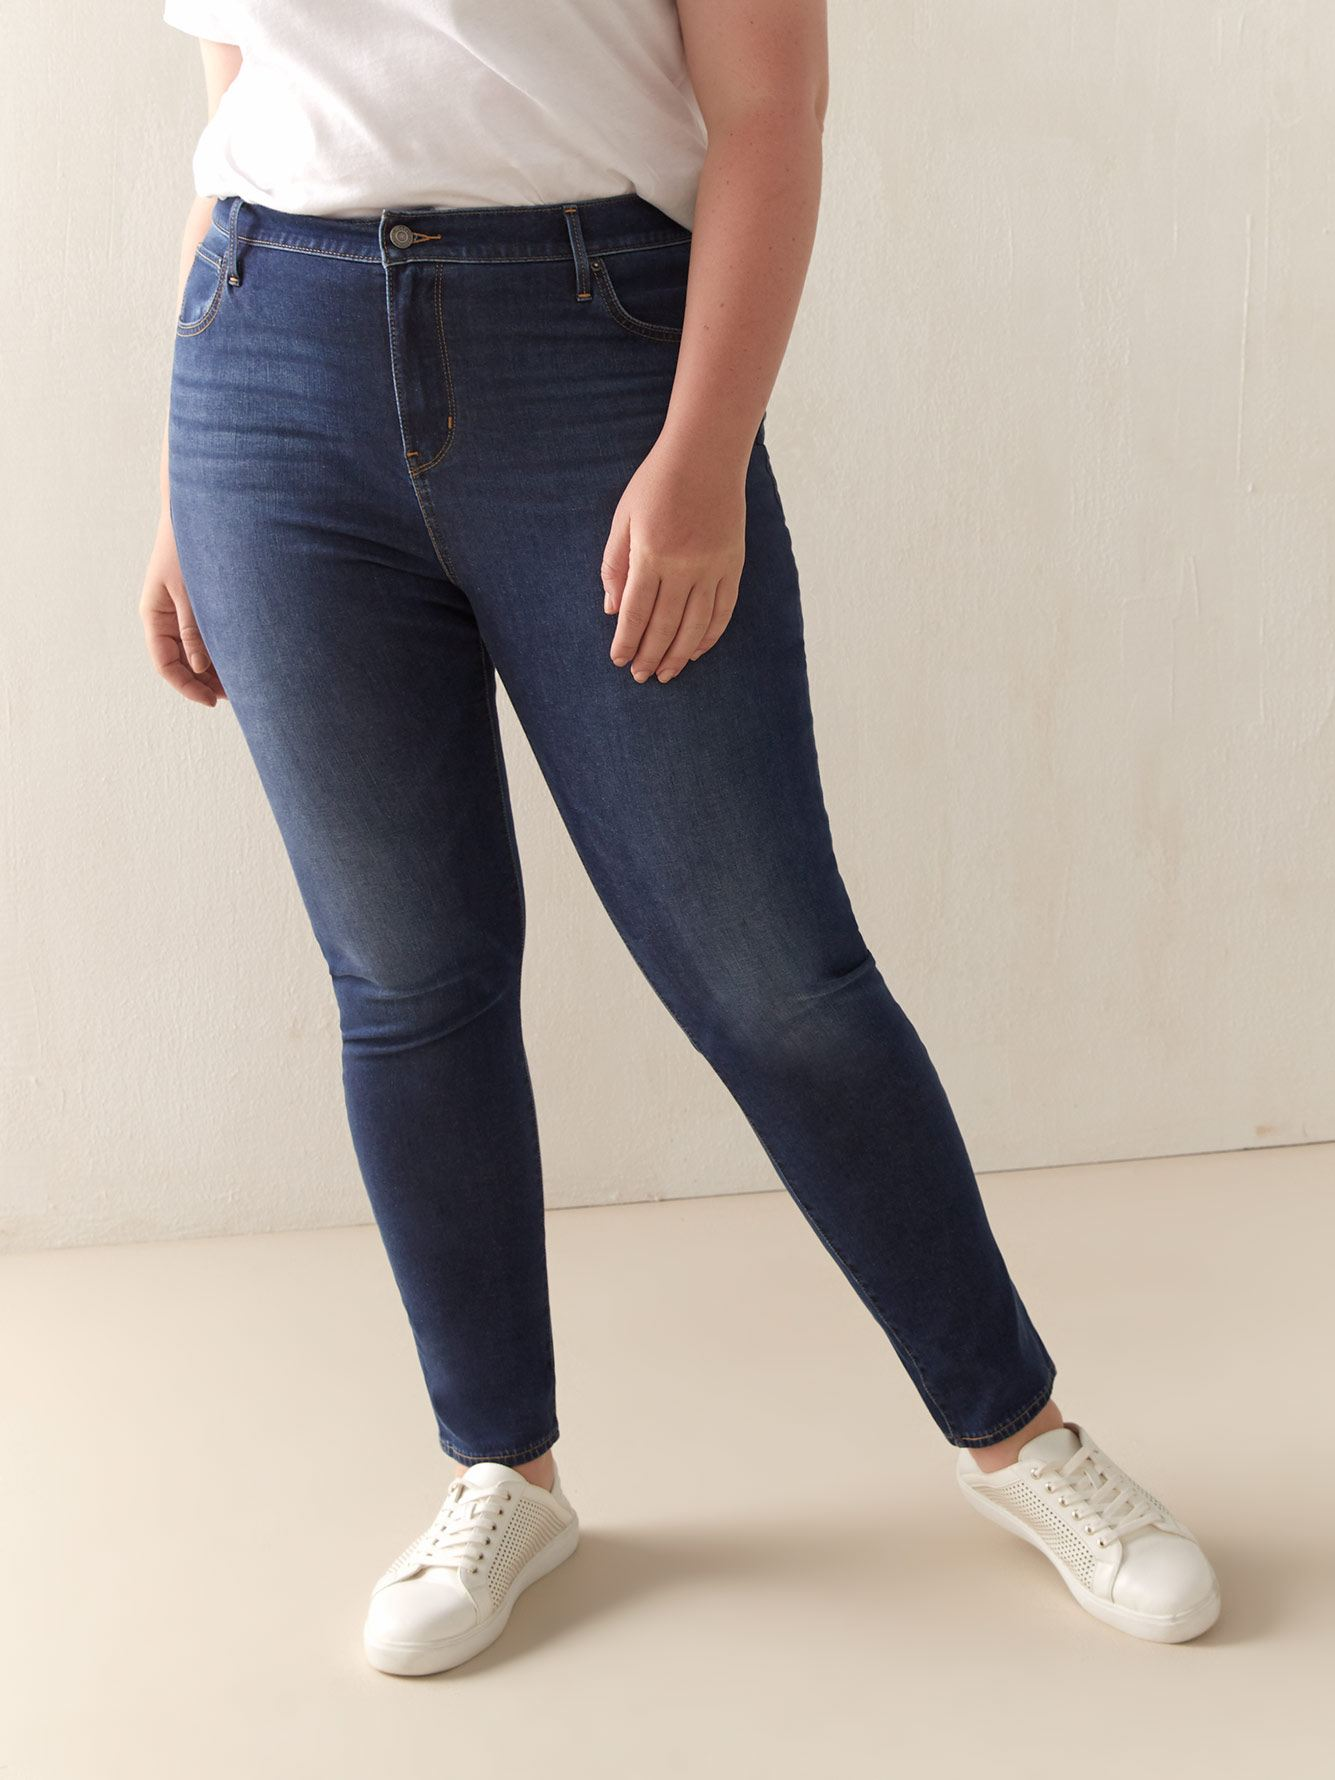 Stretchy High-Rise 721 Skinny Jean - Levi's Premium